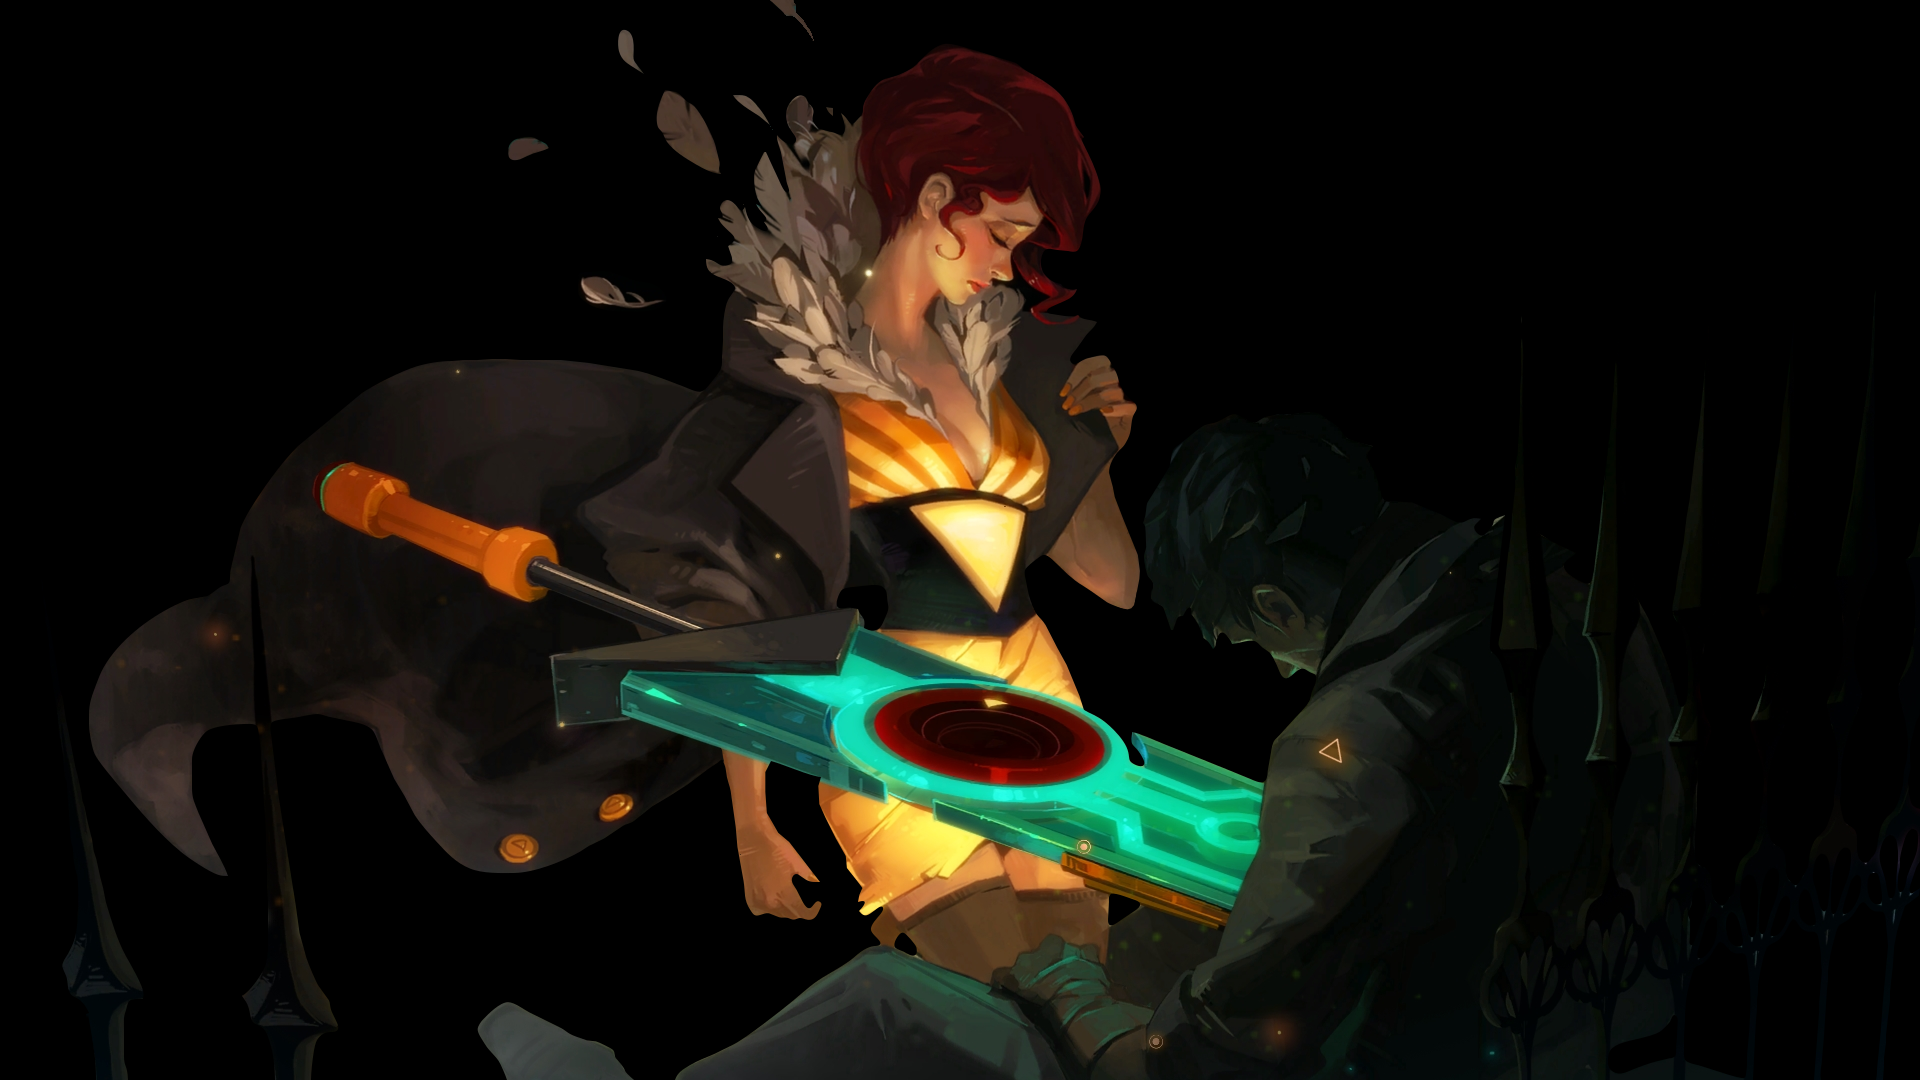 Transistor-Fulfilled-Request-1920x1080-Need-iPhone-S-Plus-Background-for-IPhon-wallpaper-wp36011605